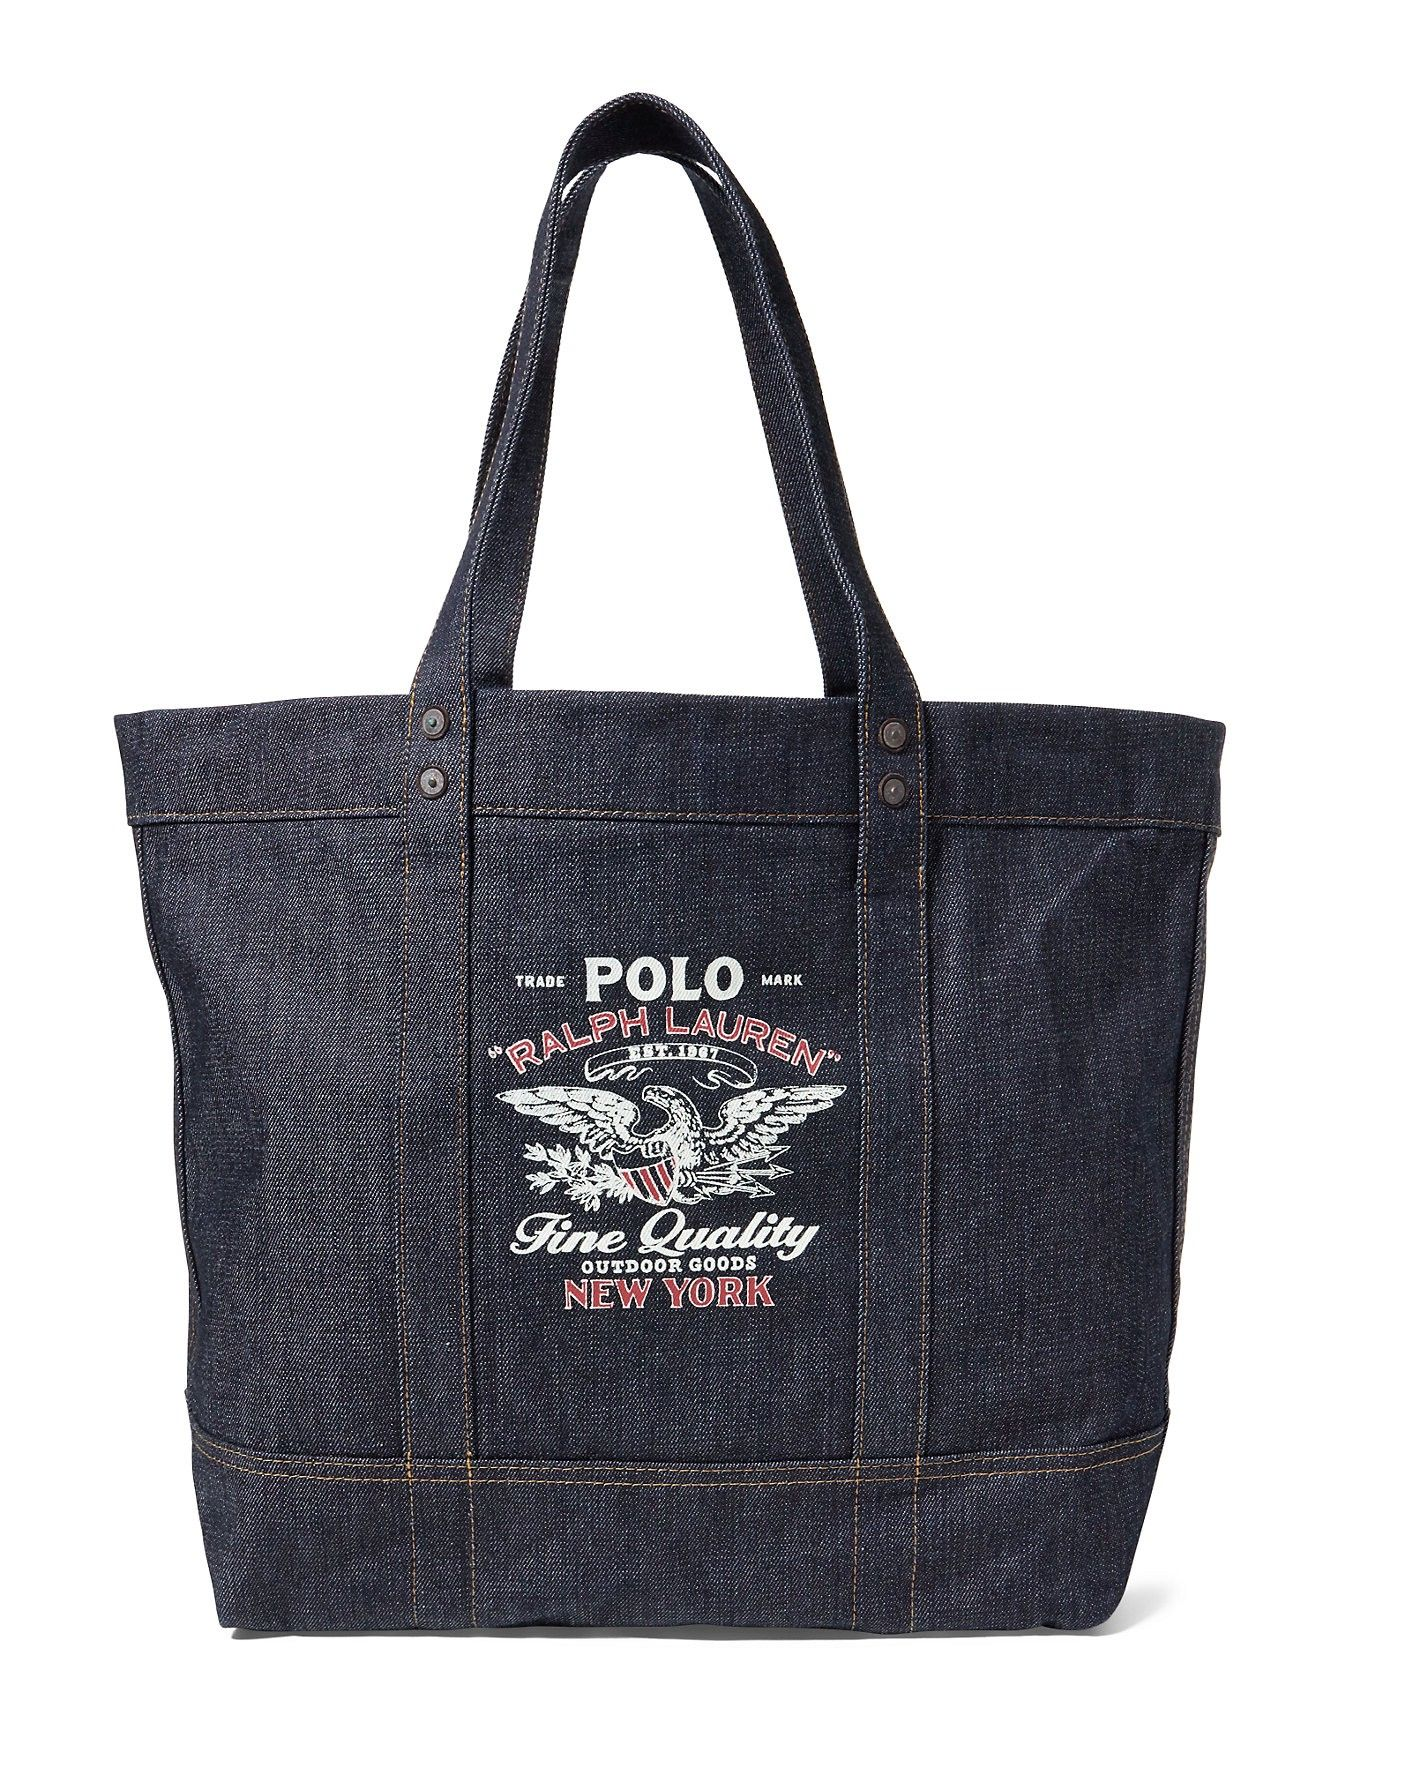 POLO RALPH LAUREN Denim Tote. #poloralphlauren #bags #polyester #tote #leather #lining #denim #hand bags #cotton #